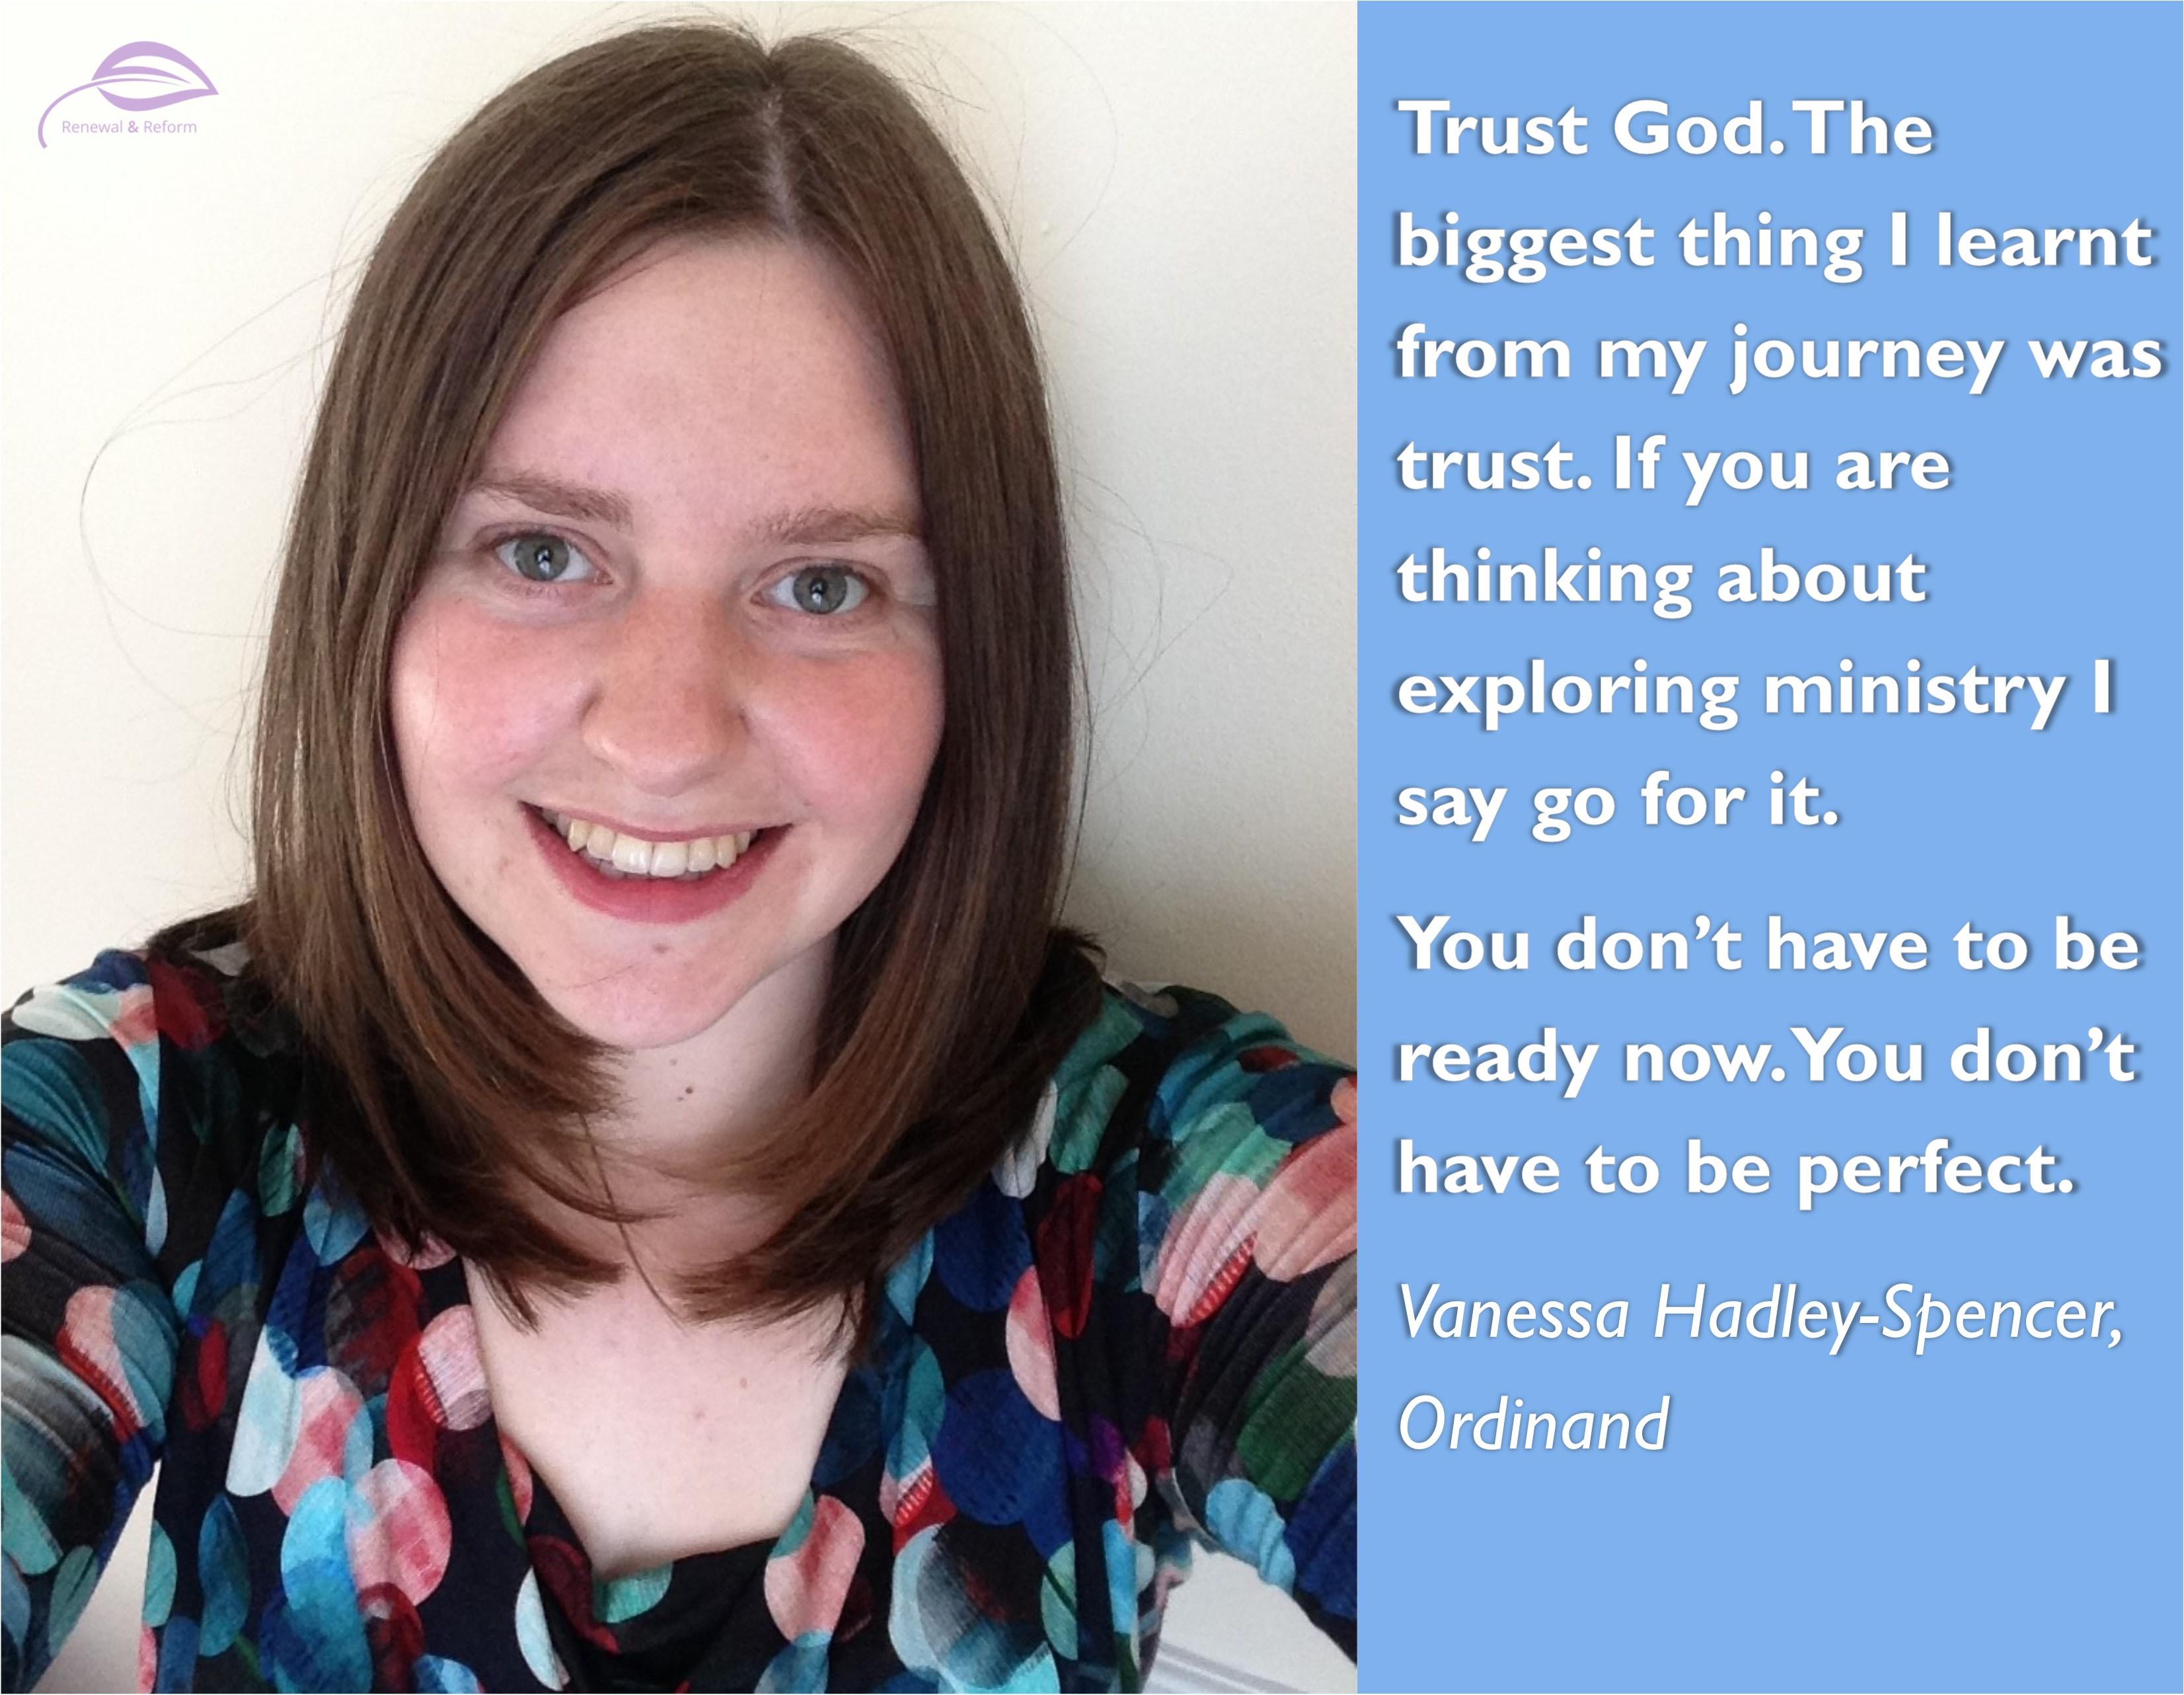 Vanessa Hadley Spencer. Ordinand. Trust God. The biggest thing I learnt from m journey was trust. If you are thinking about exploring ministry I say go for it. You don't have to be ready now. You don't have to be perfect.